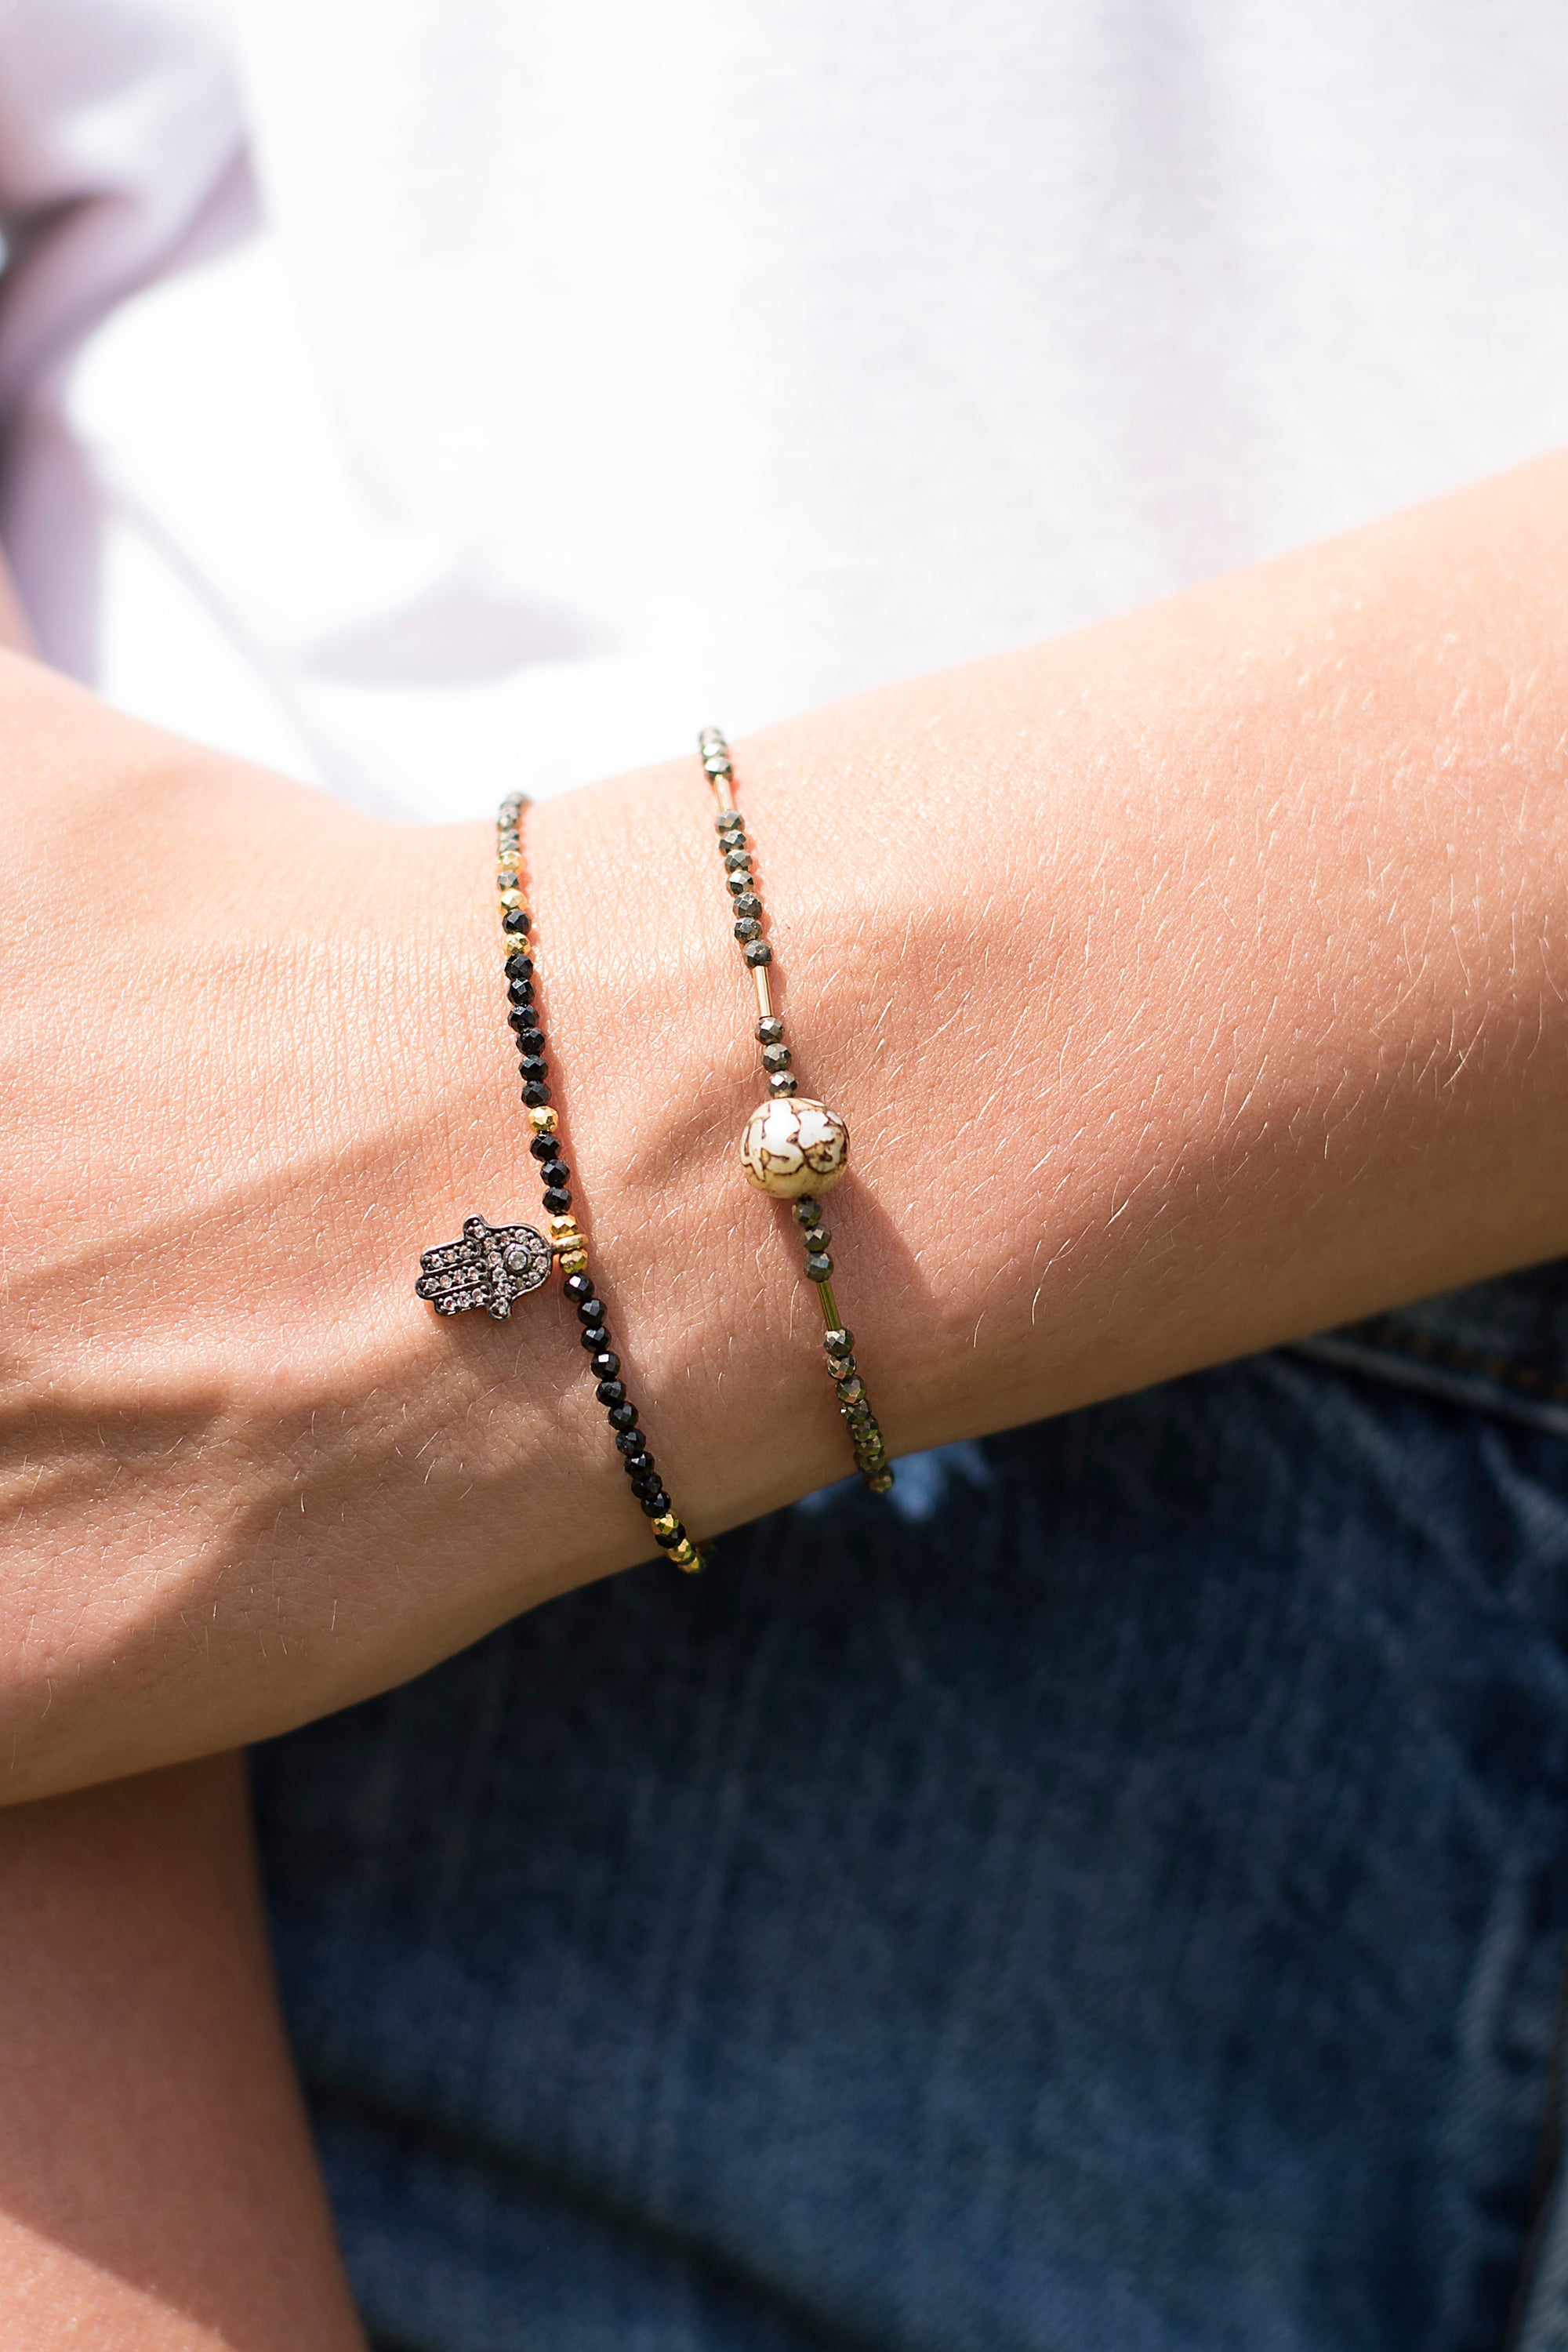 Black Spinel and Pyrite Hamsa Bracelet